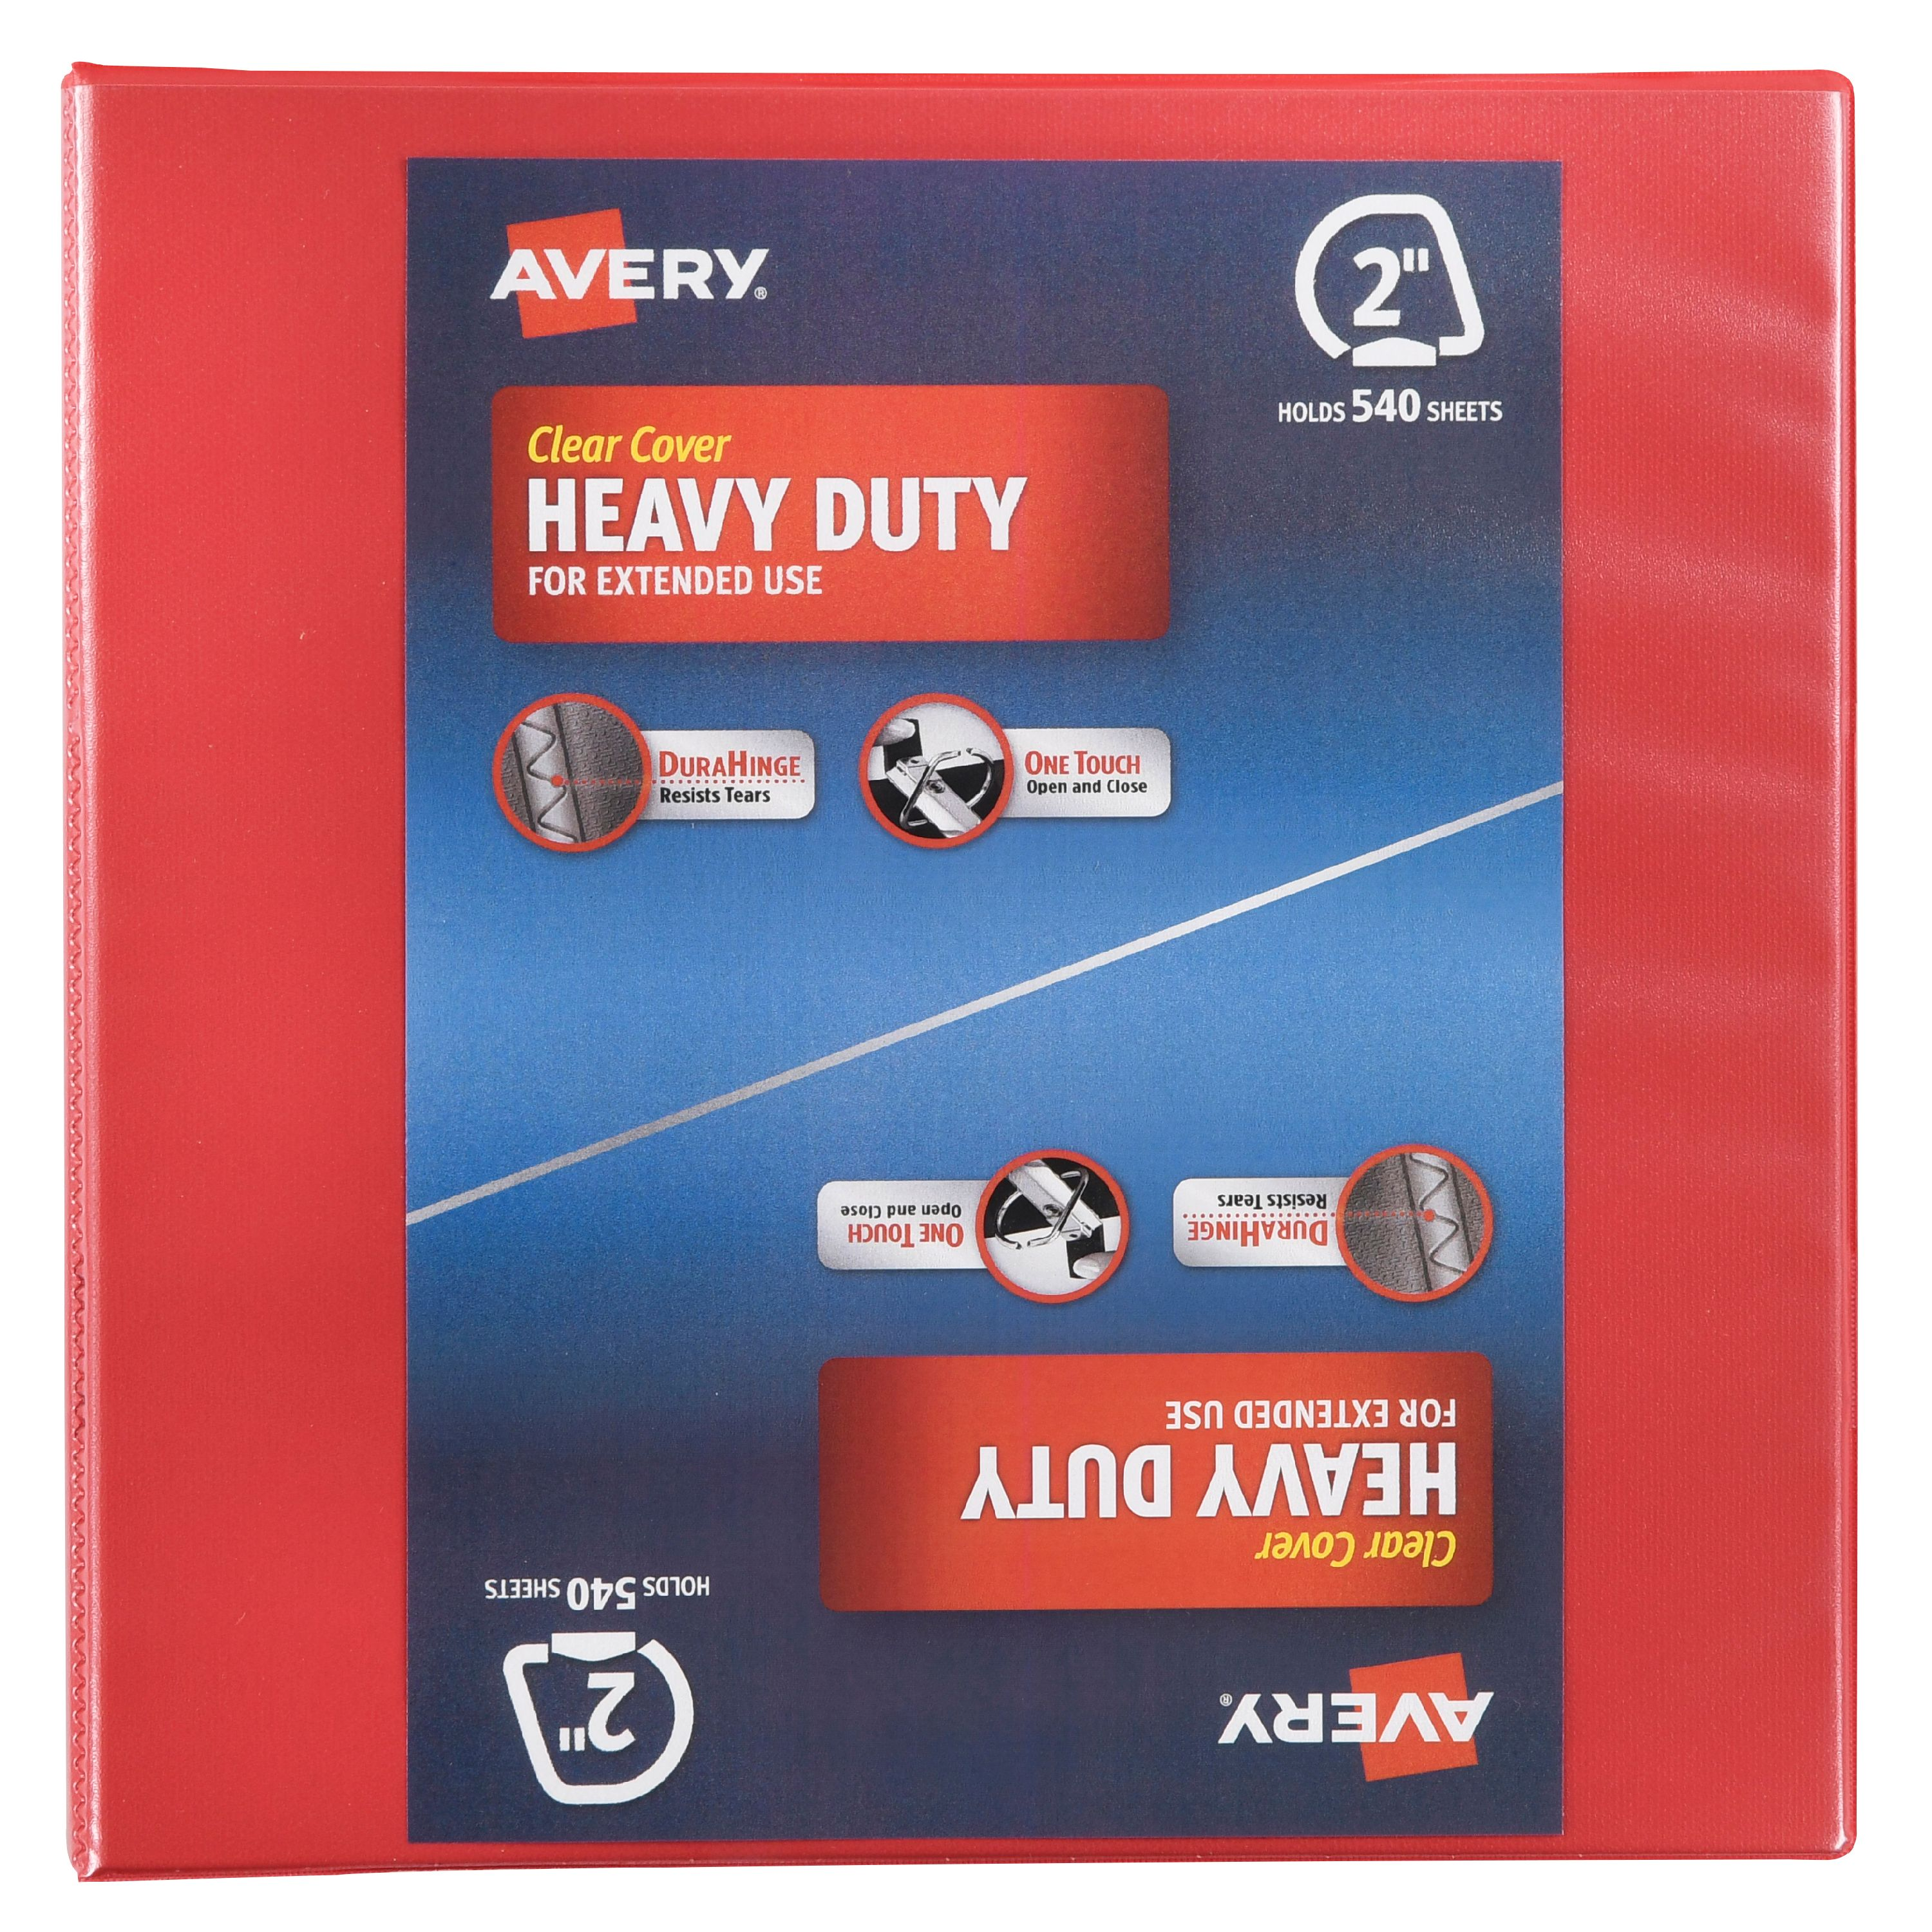 "Avery Clear Cover Heavy Duty 2"" Binder, 1.0 CT"